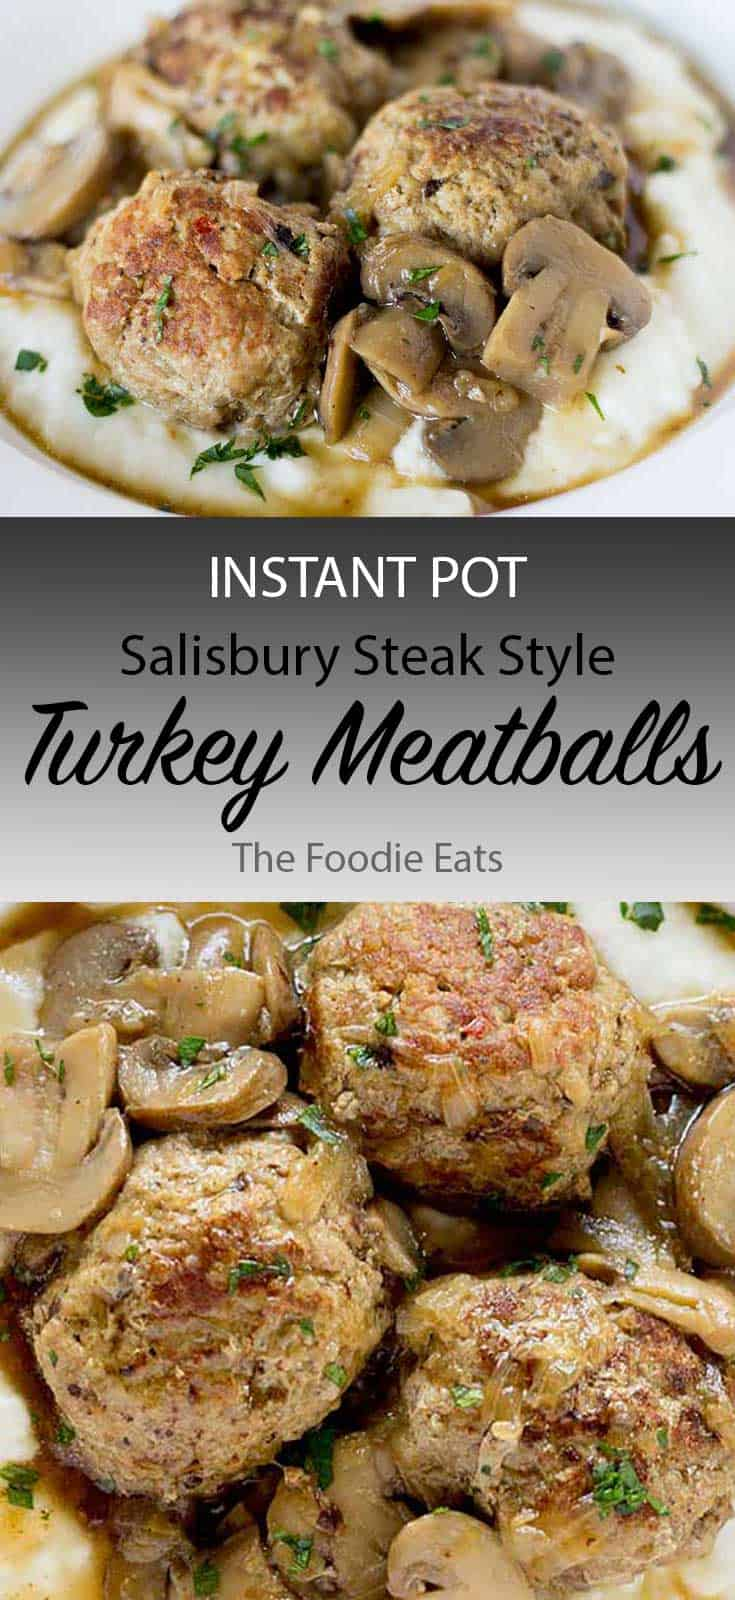 Instant Pot Turkey Meatballs - Salisbury Steak Style | The Foodie Eats